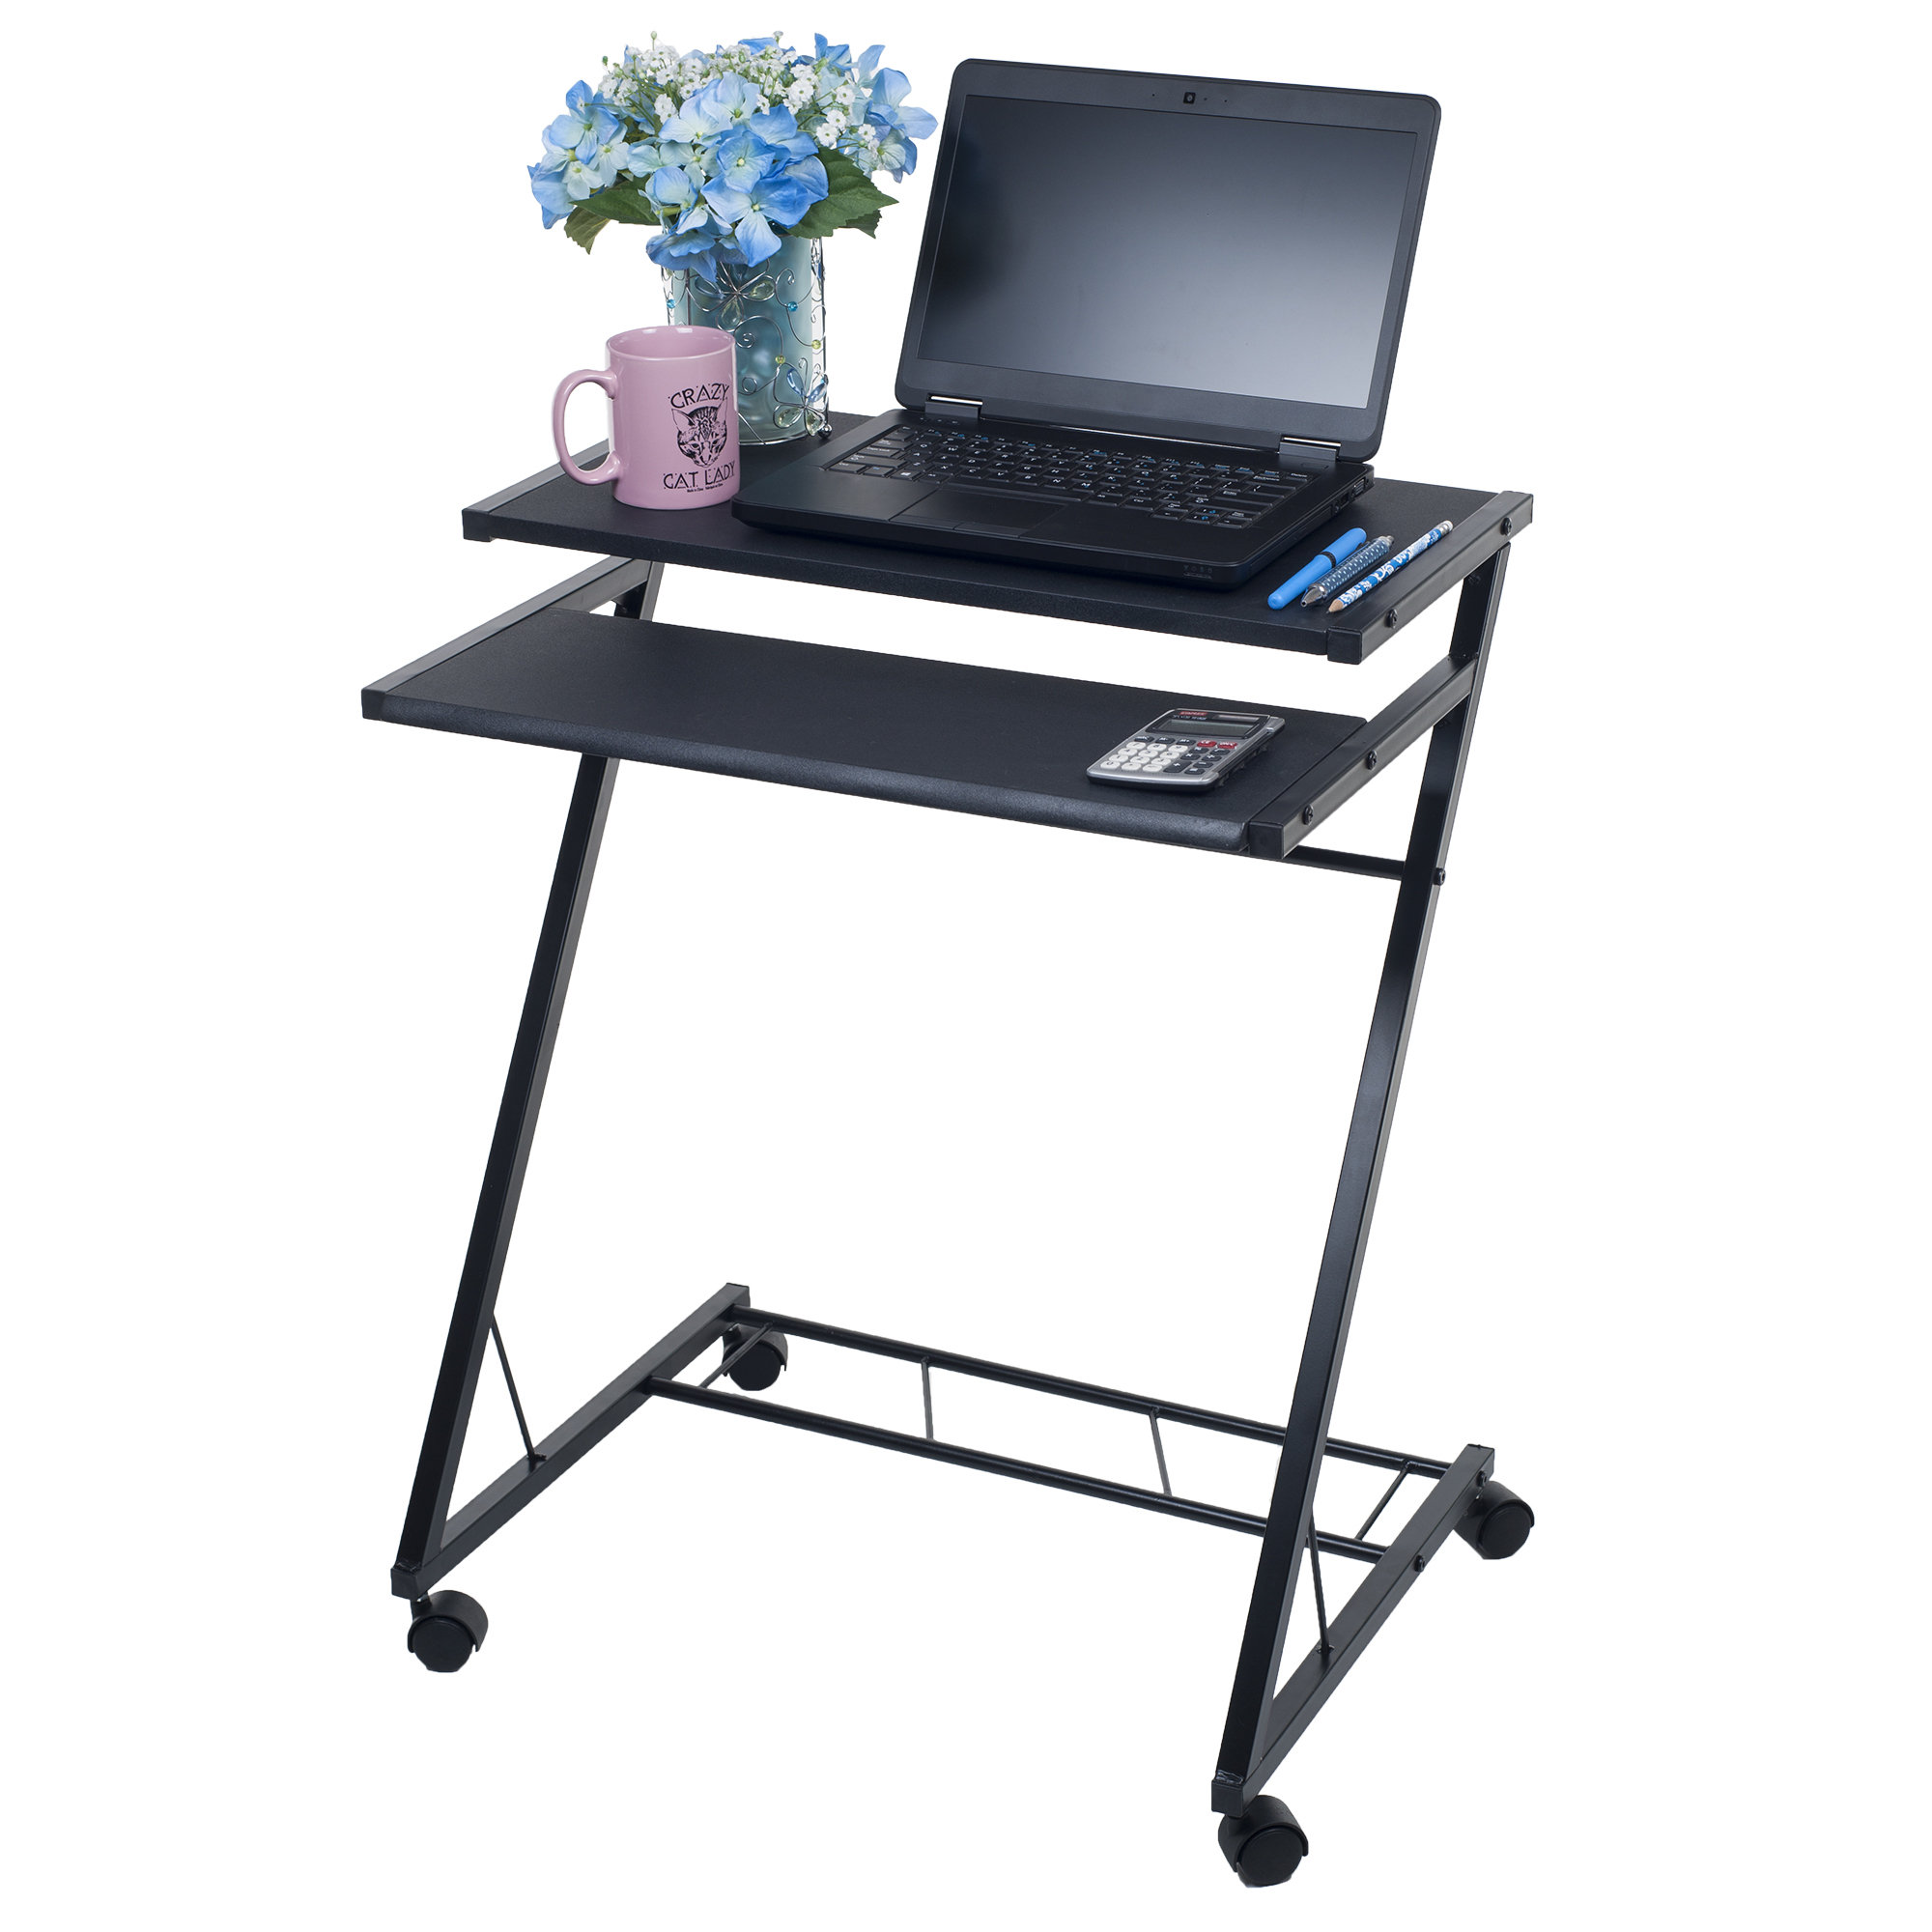 mobile laptop desk cart portable computer table notebook stand home furniture ebay. Black Bedroom Furniture Sets. Home Design Ideas